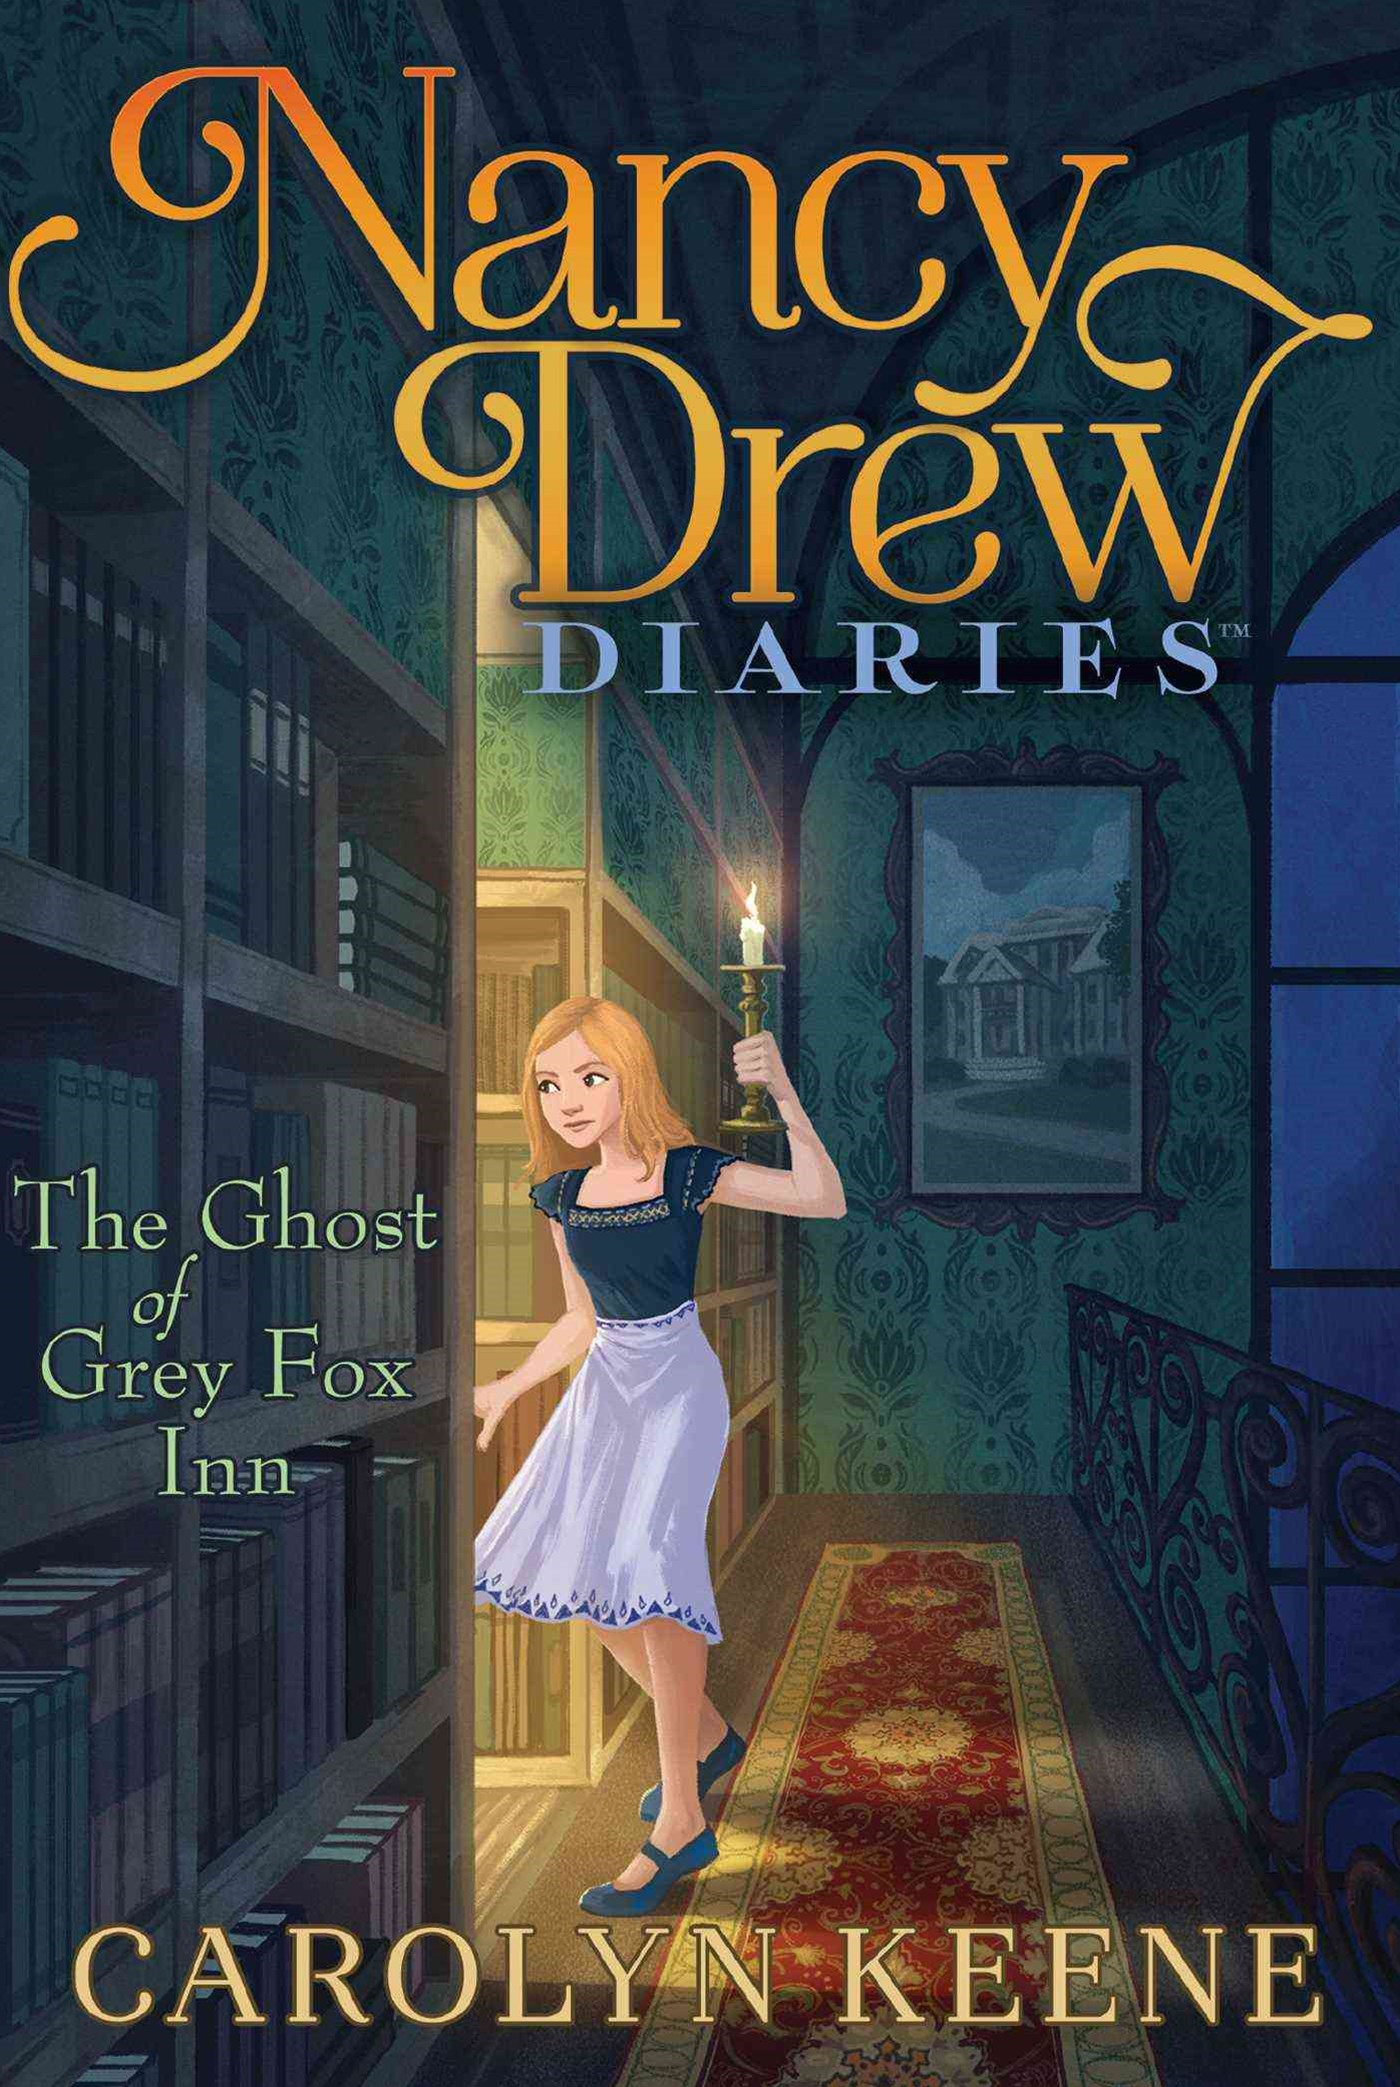 Nancy Drew Diaries #13: The Ghost of Grey Fox Inn